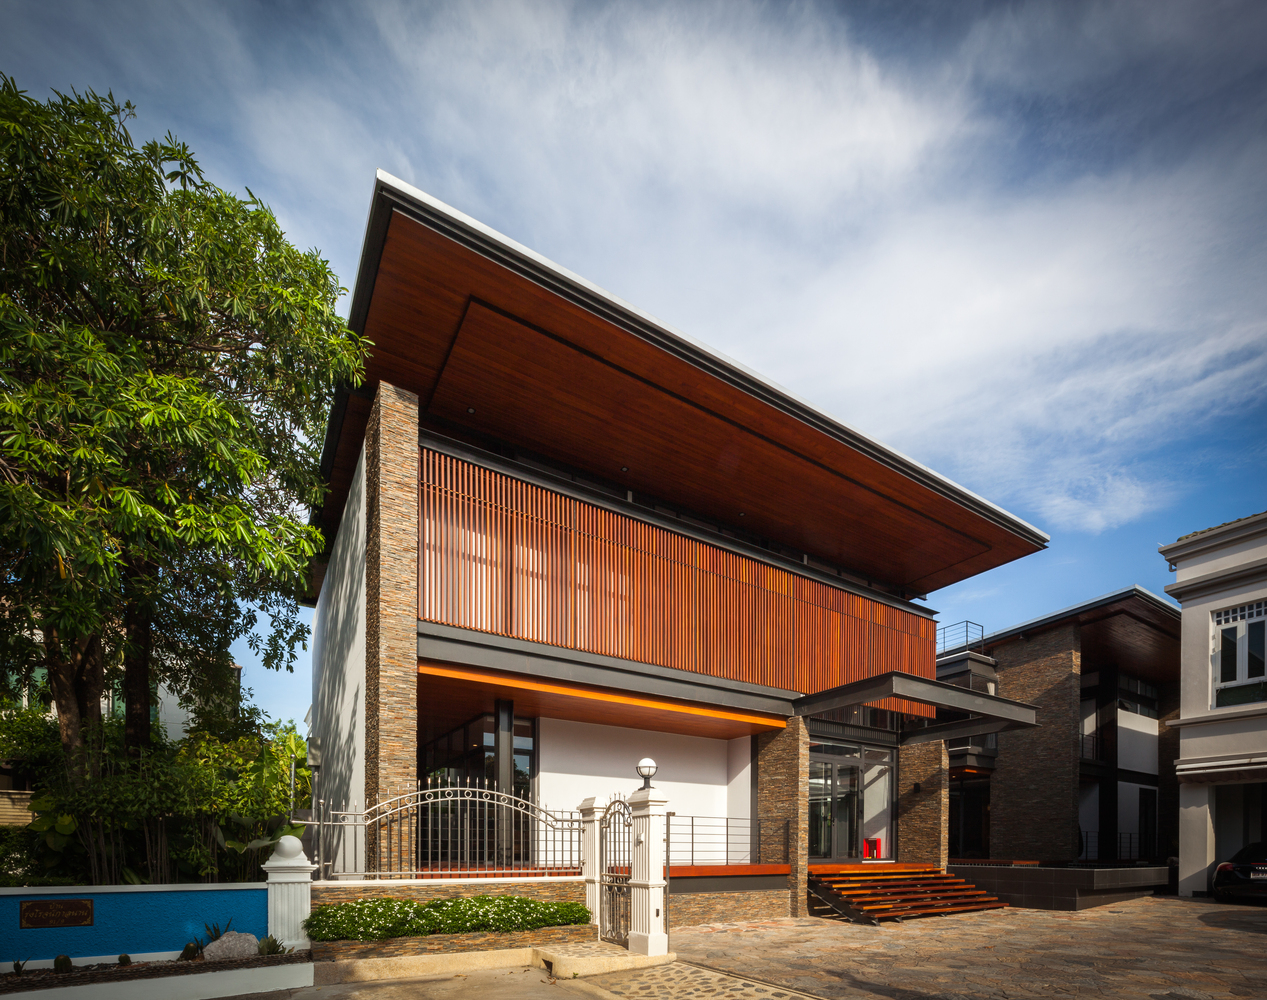 Architect And Design gallery of bridge house / junsekino architect and design - 3